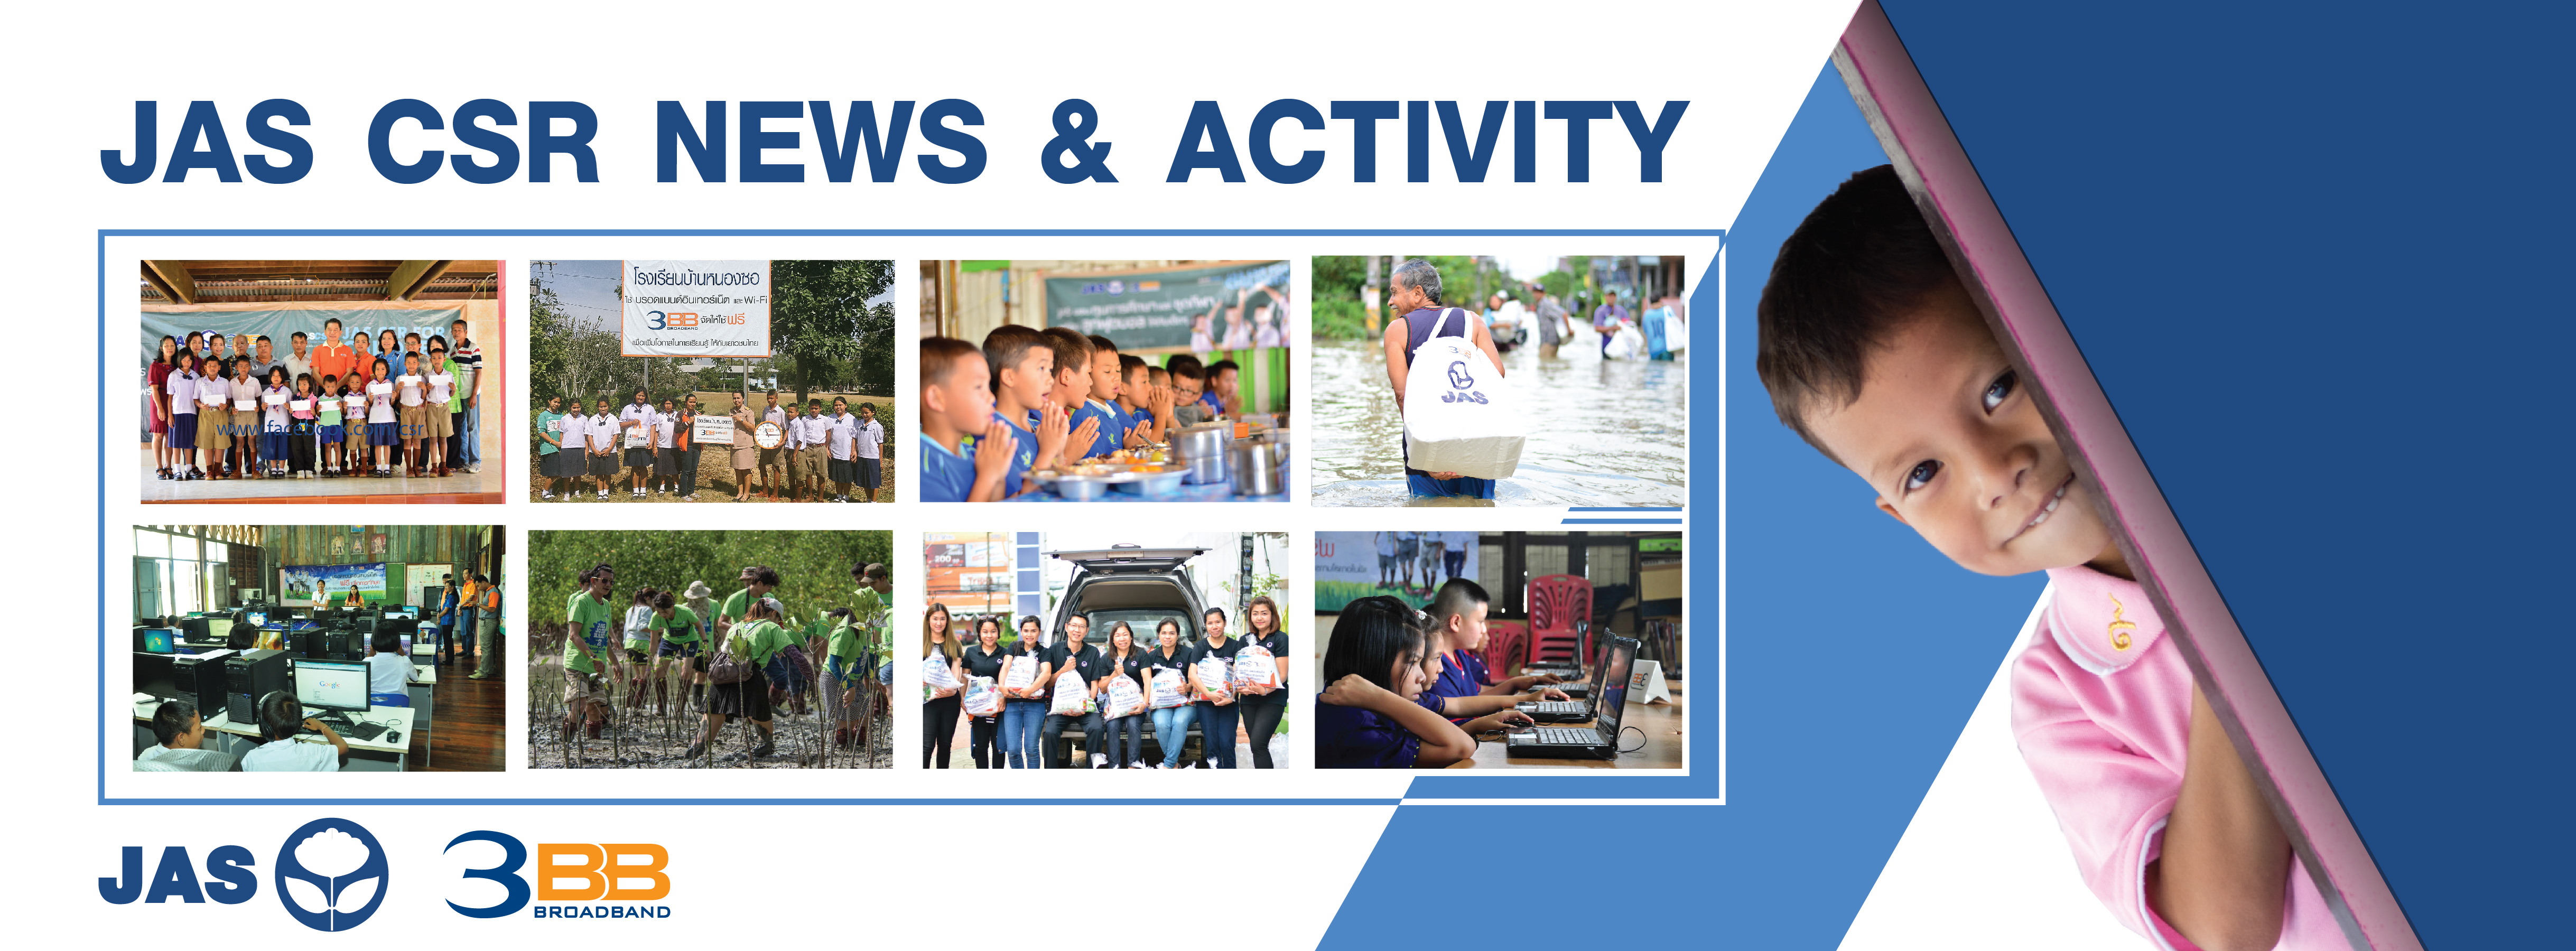 Jas CSR News & Activity